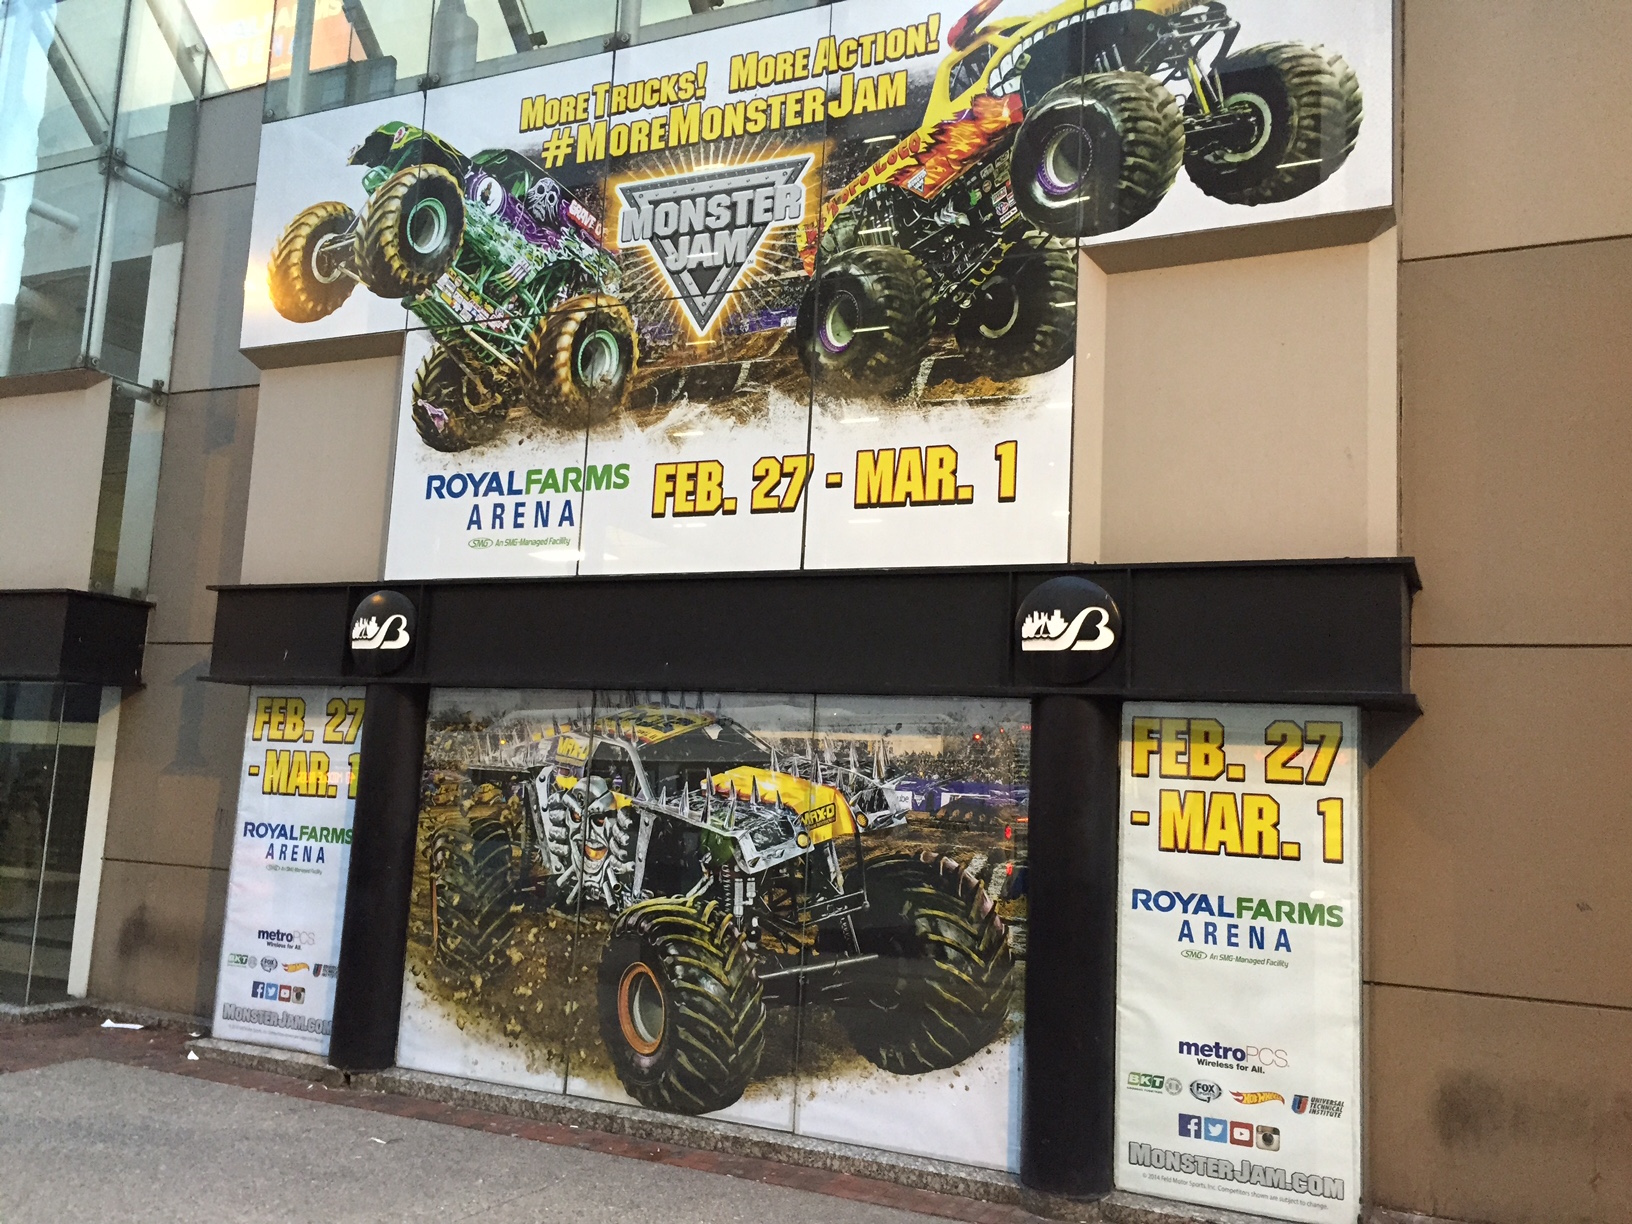 Monster Truck special event signage